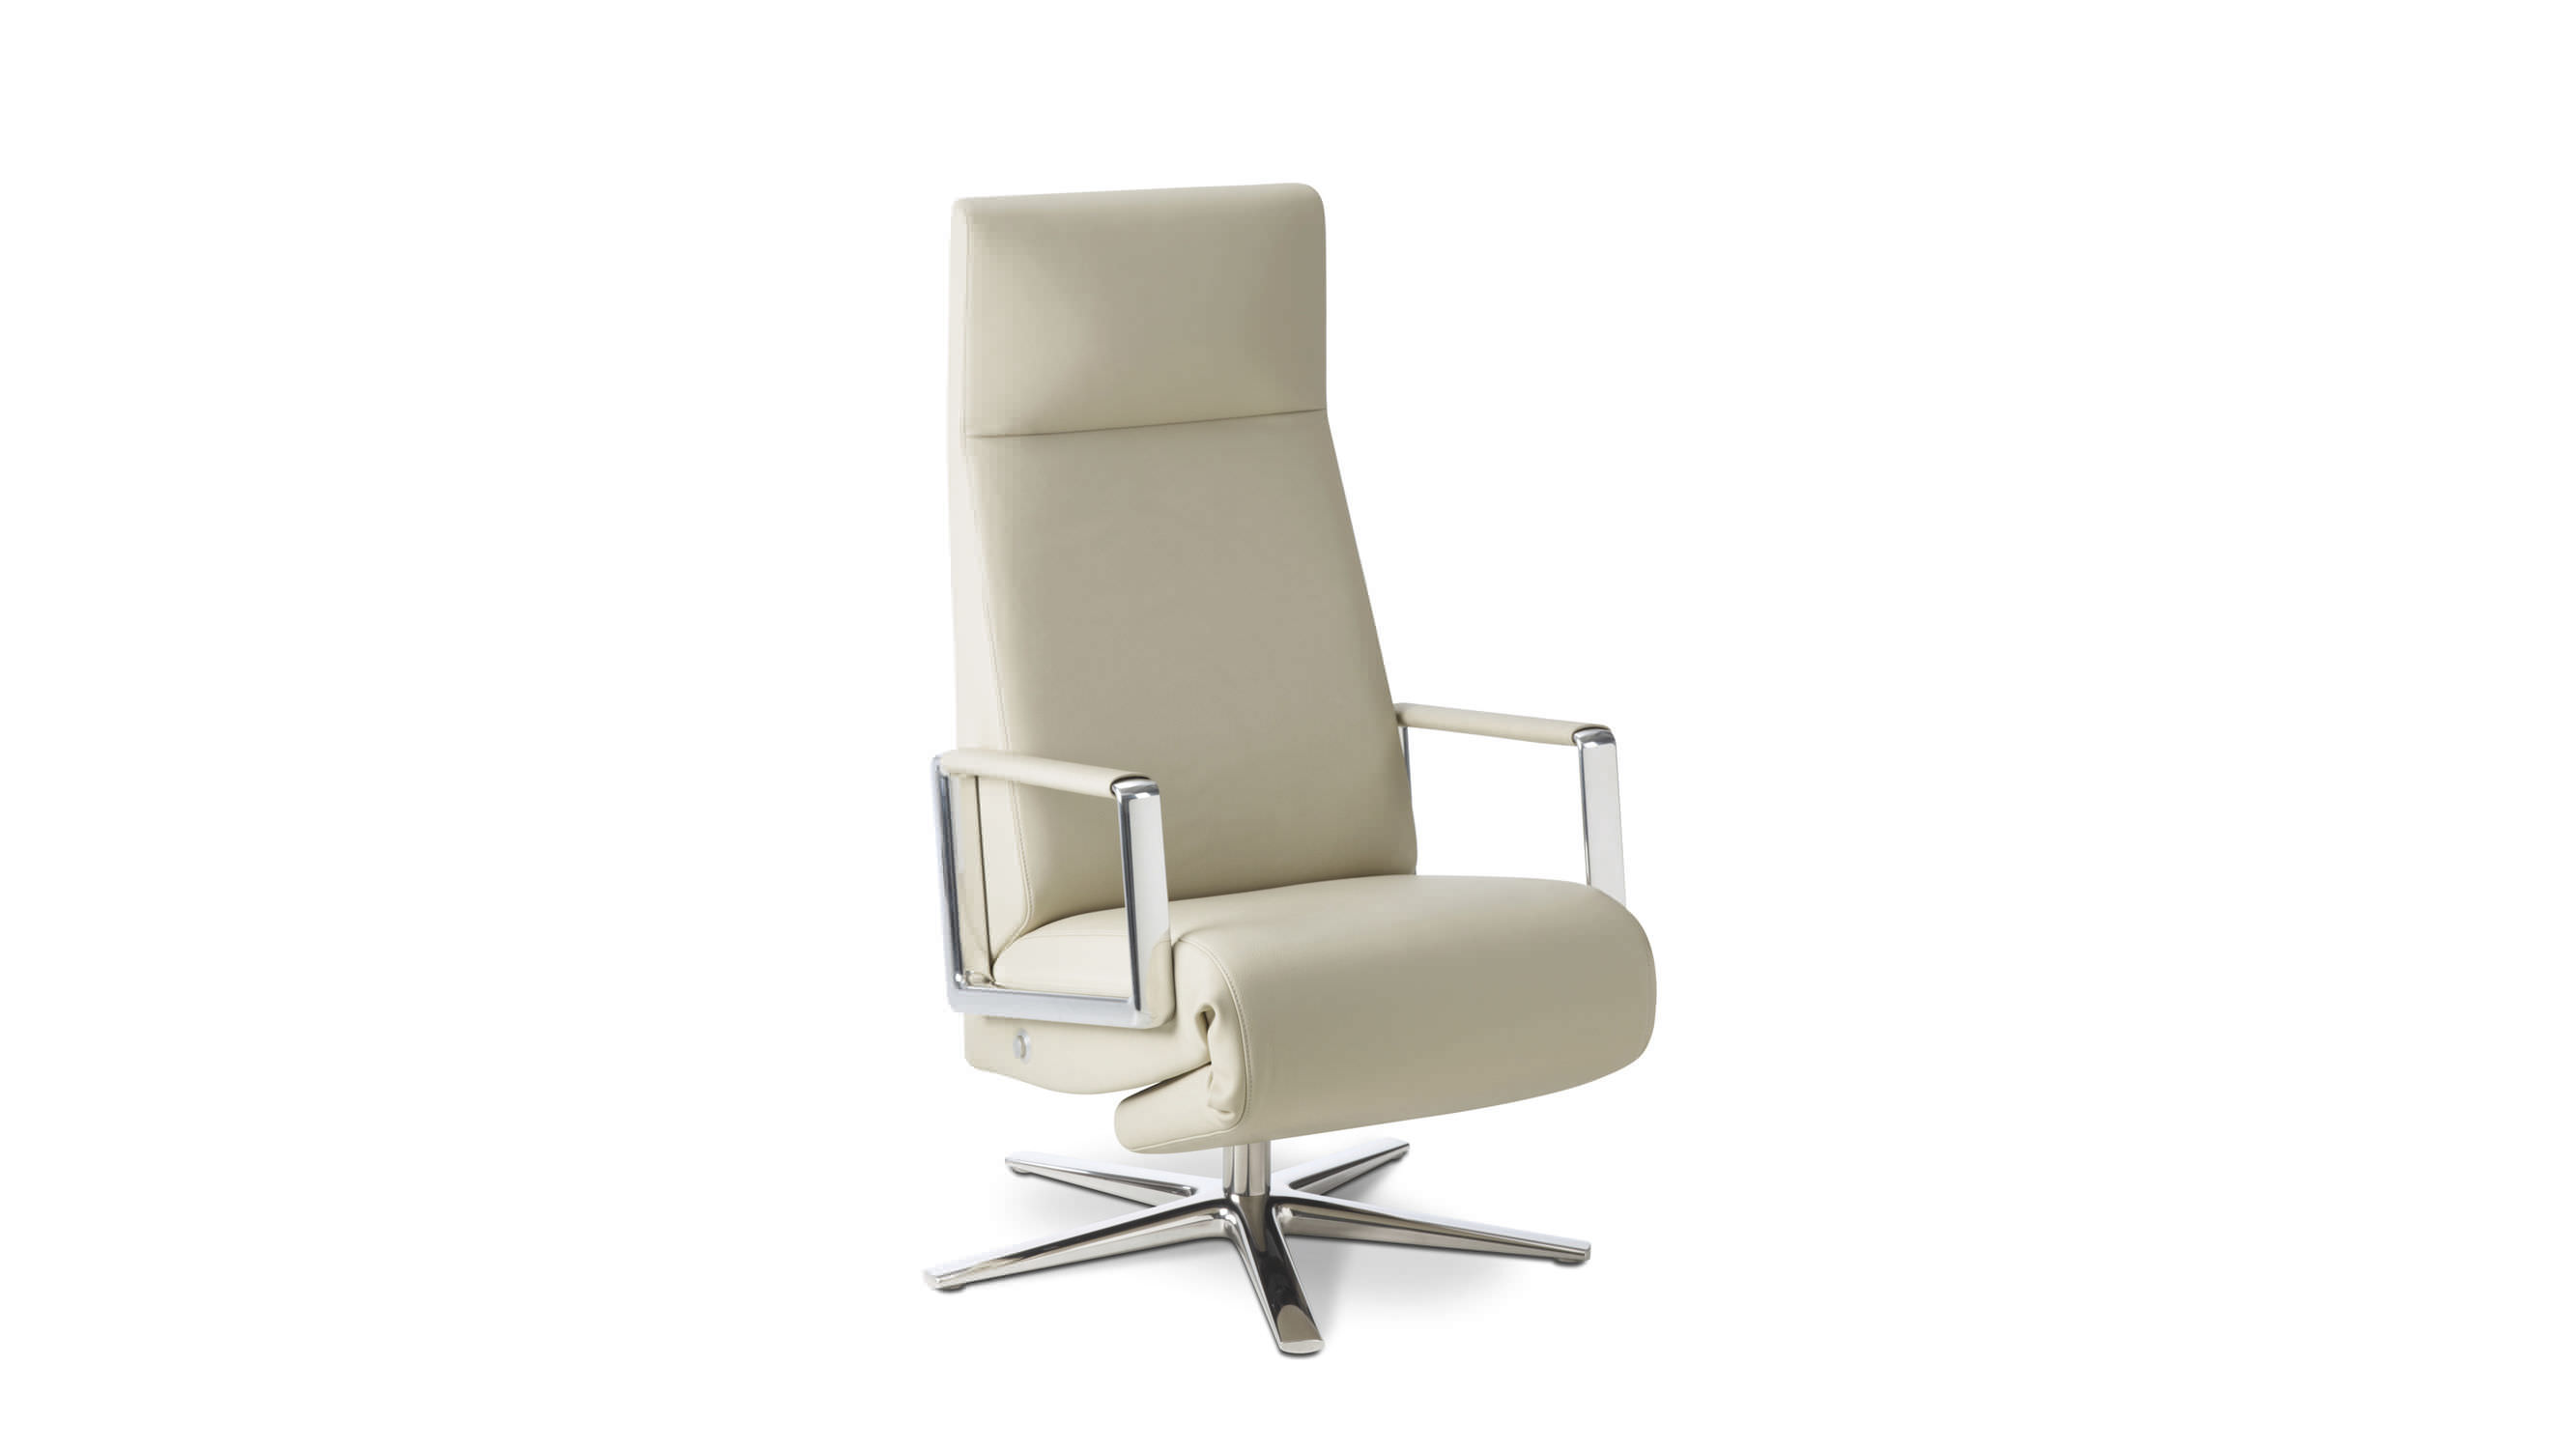 Moderne Relaxsessel Moderner Relaxsessel Simple Gallery Relaxsessel Leder Modern Schn